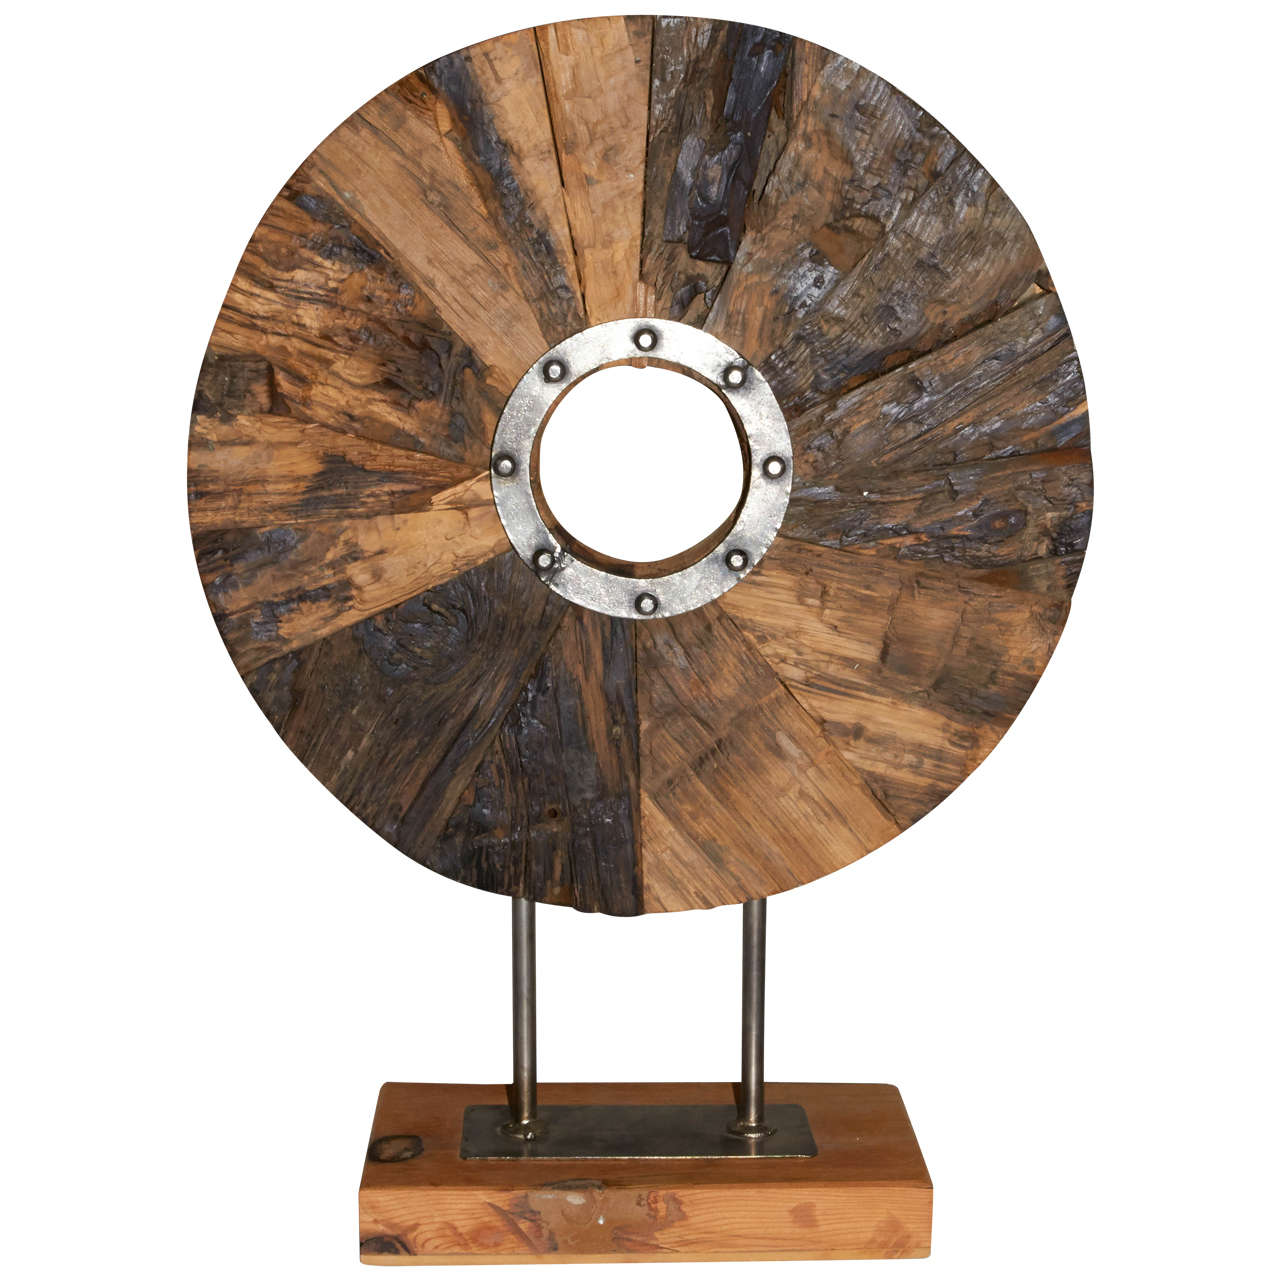 Industrial wood and metal sculpture on stand for sale at